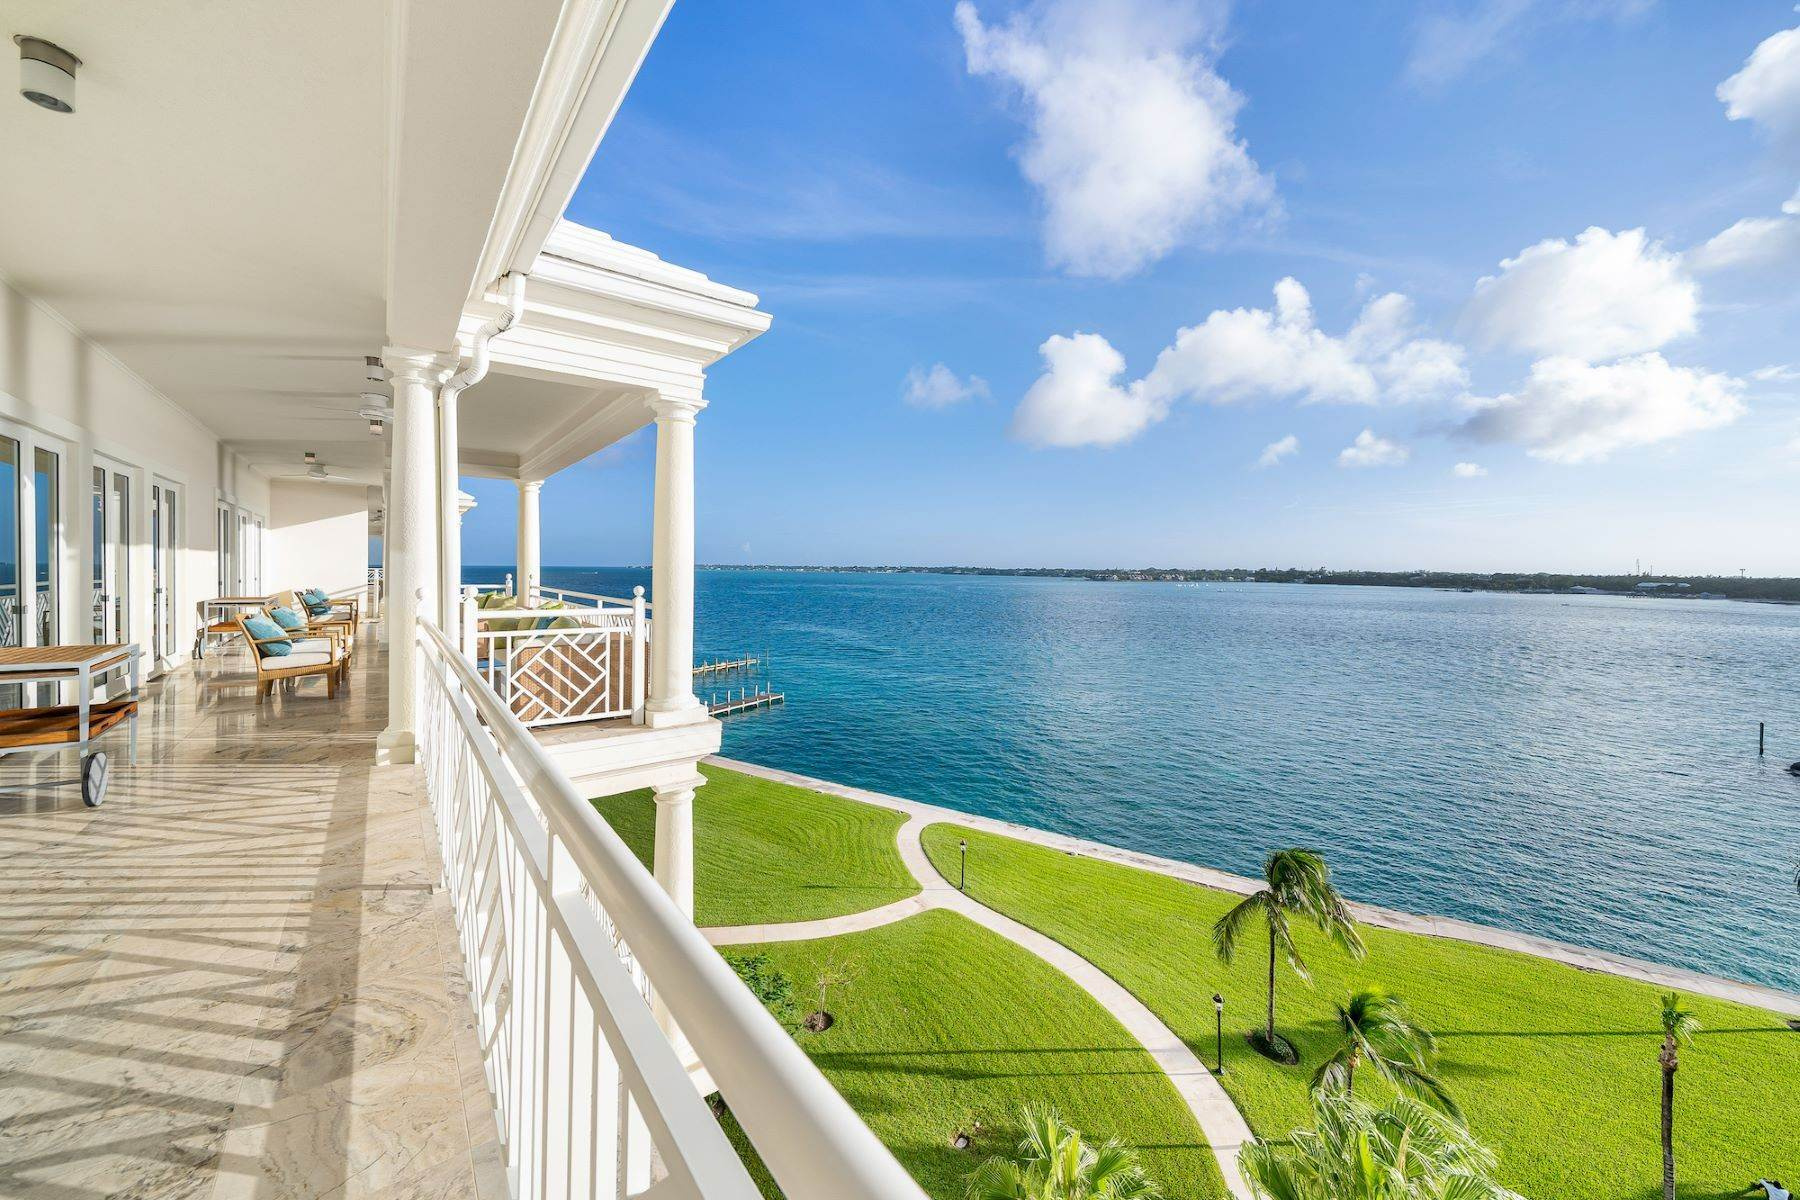 Single Family Homes for Sale at A6.2 Ocean Club Residences & Marina Penthouse Ocean Club Residences and Marina, Paradise Island, Nassau And Paradise Island Bahamas